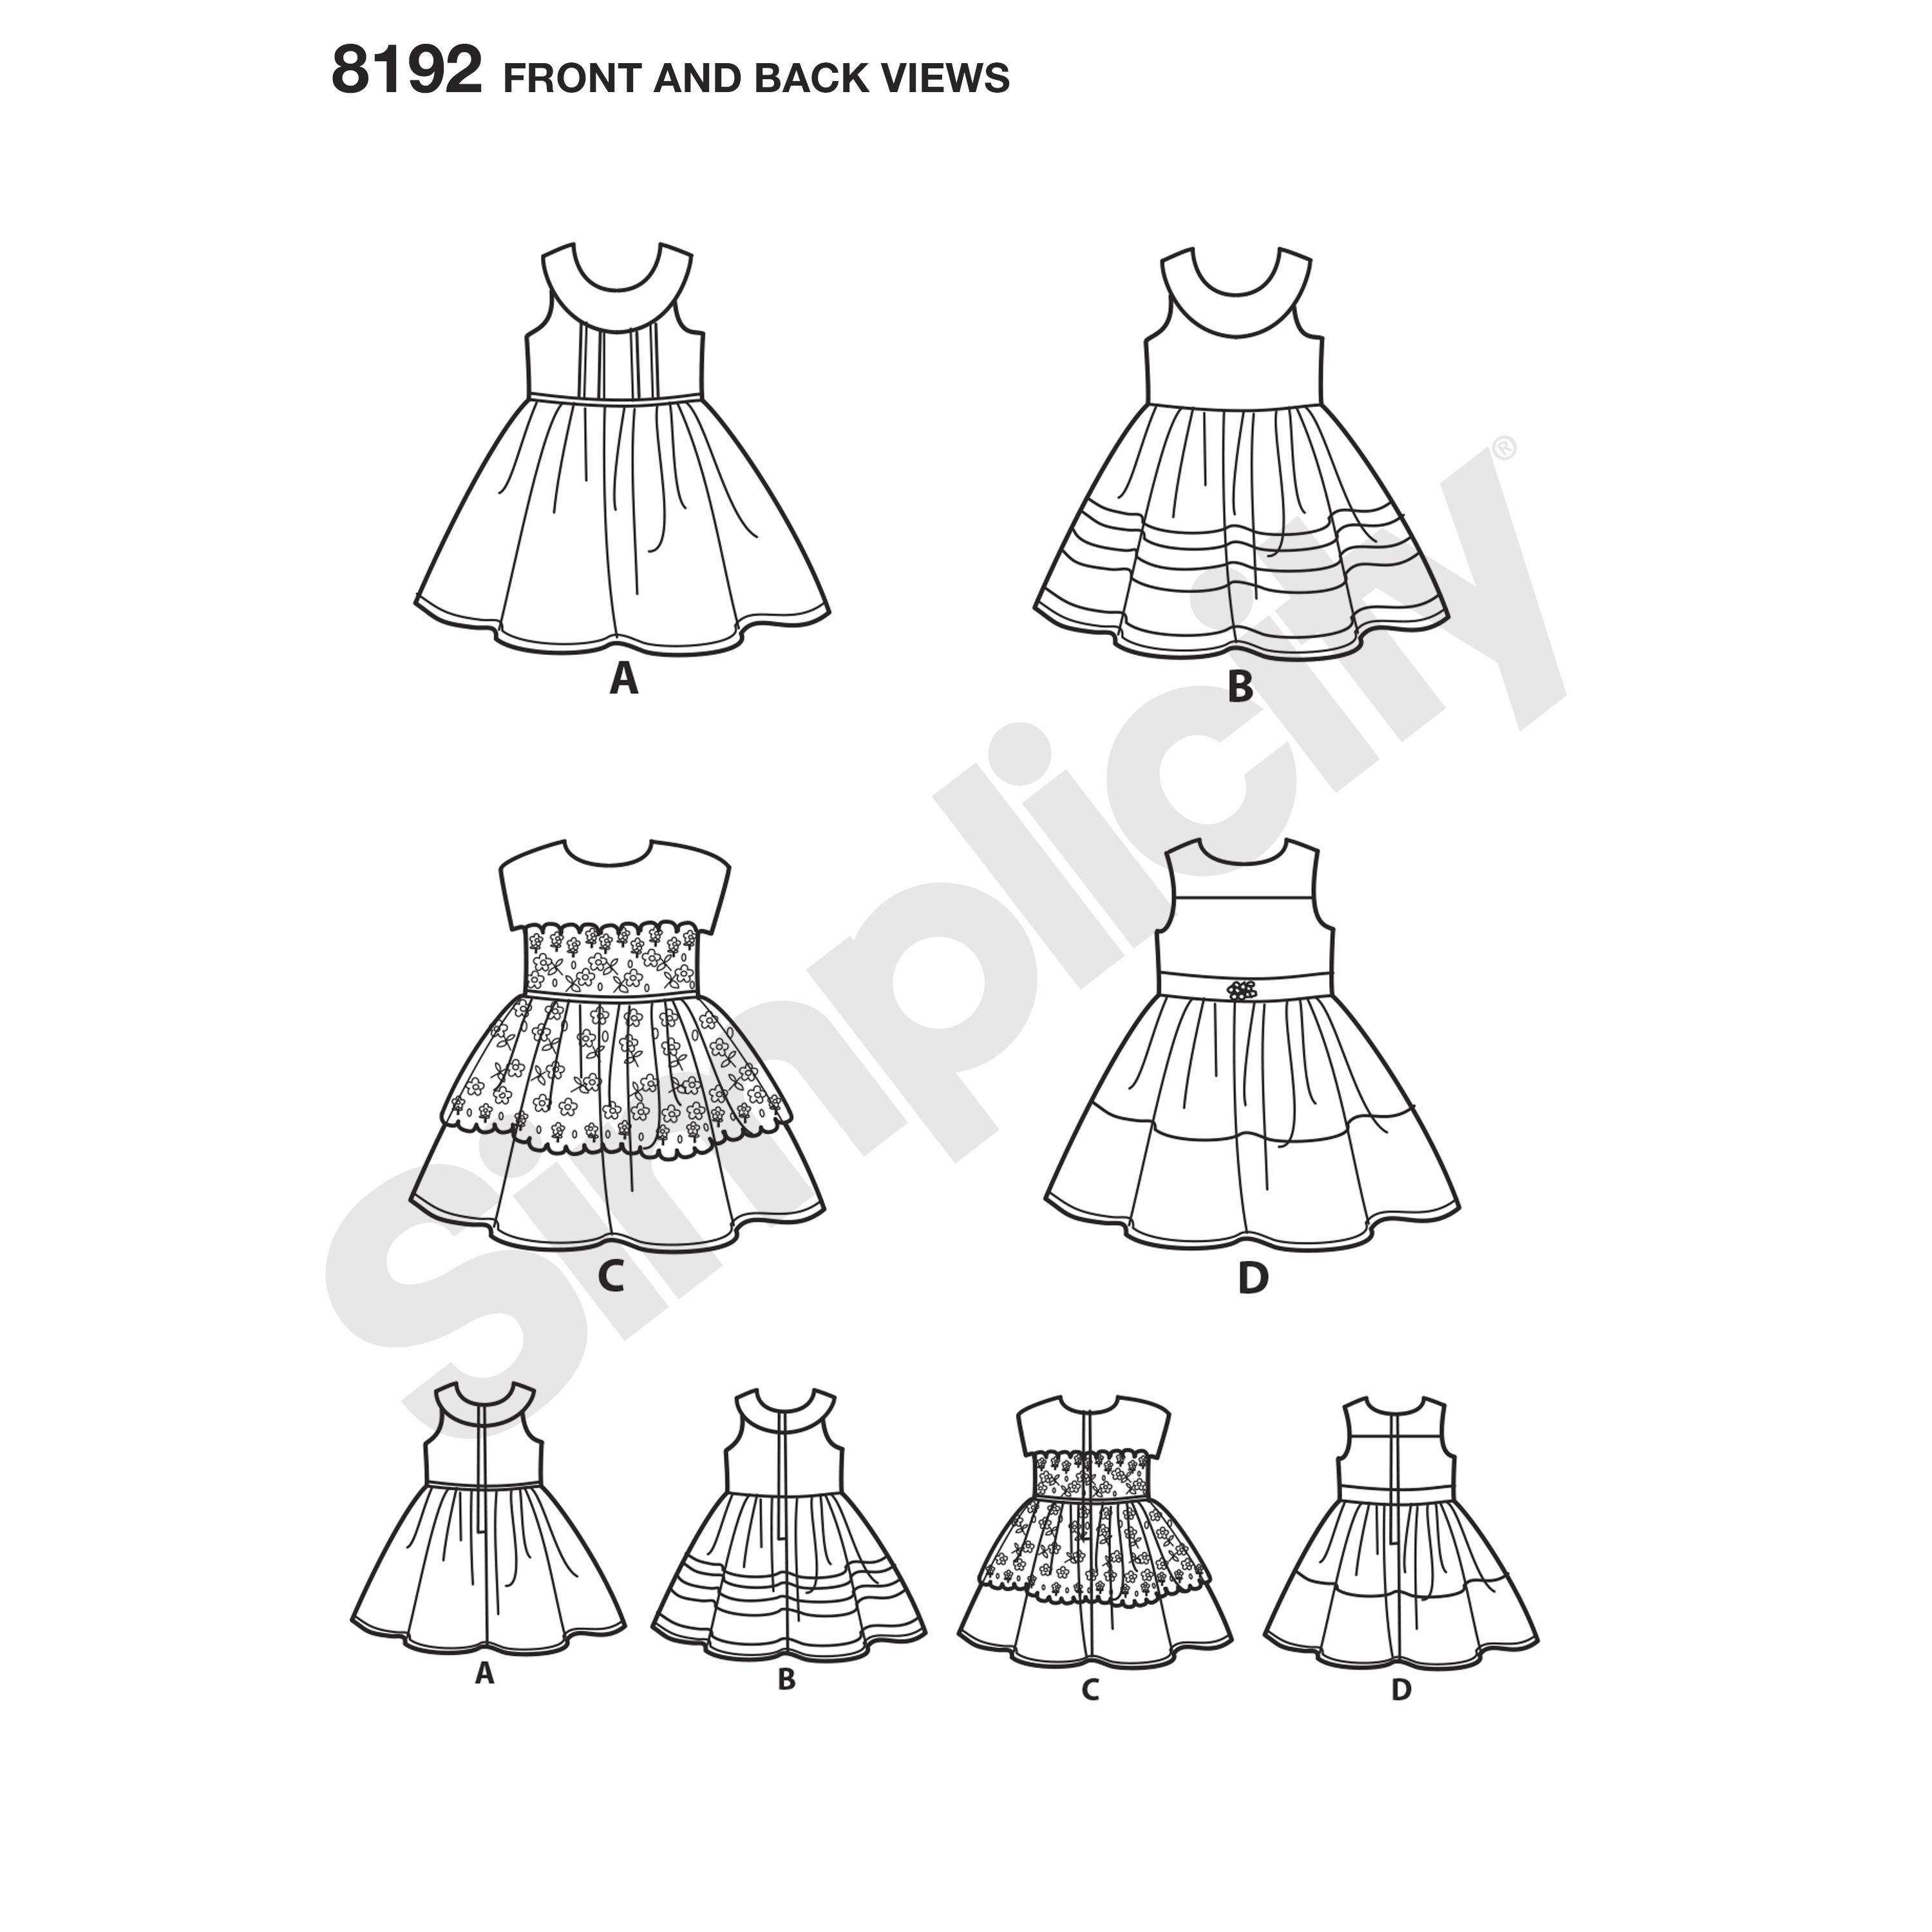 "American Girl sundresses for 18"" dolls. Pattern features dress with a full skirt and options for a yoke and piping, contrasting fabrics, belt or lace overlay. Simplicity sewing pattern."